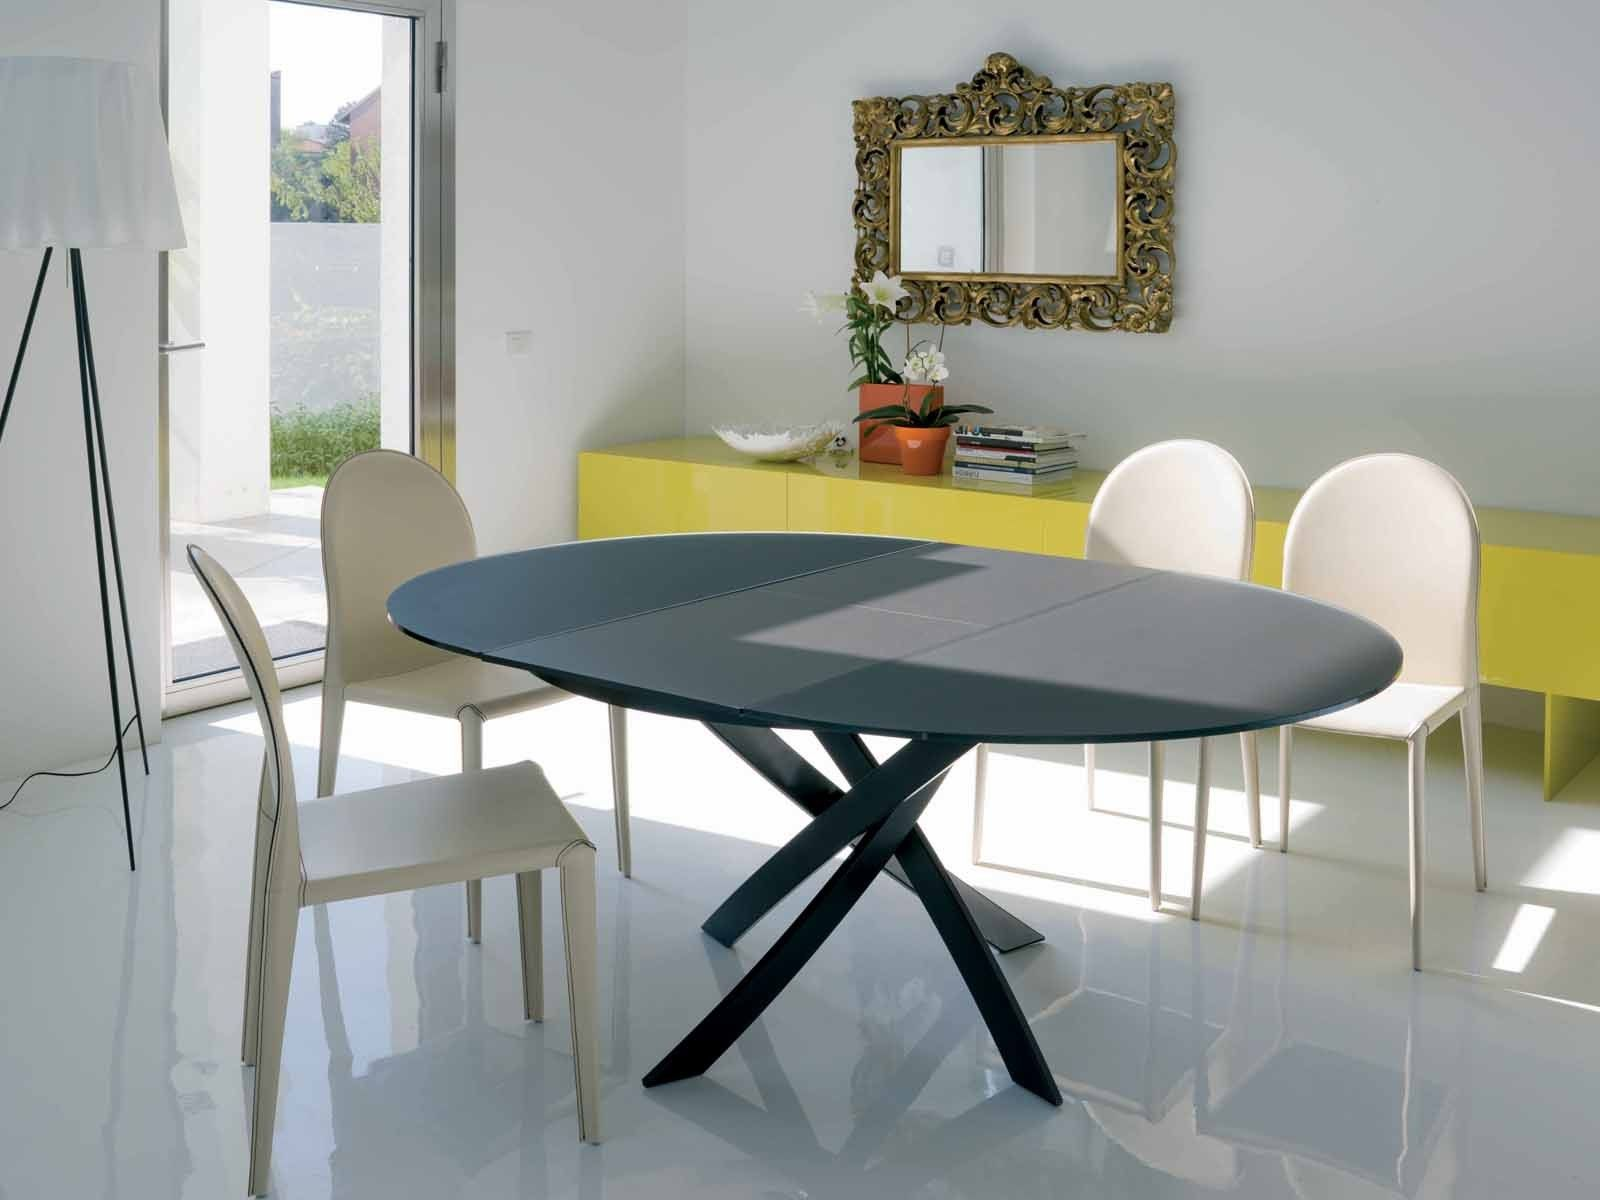 Expanding Round Table Expandable Round Dining Table Furniture Expandable Round Table For D Round Dining Room Table Large Round Dining Table Round Dining Room